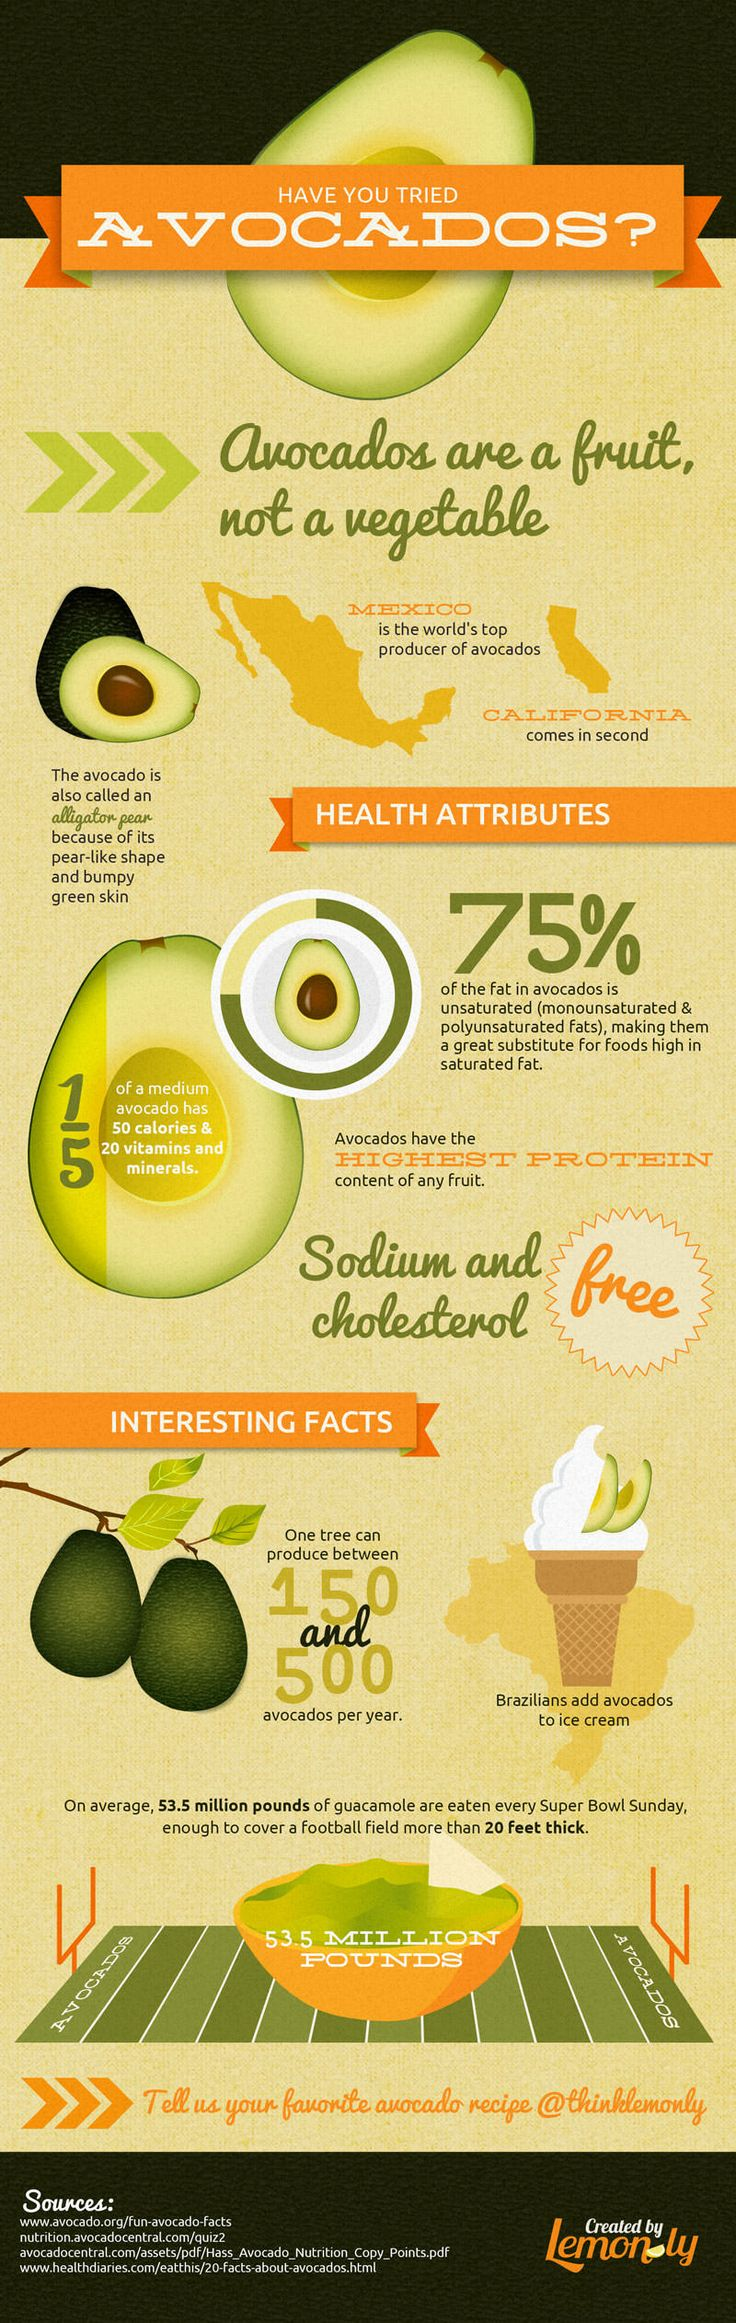 Are avocados fattening? It is the avocado high fat content that has led to the myth that avocados are fattening and should be avoided in low calorie diets.